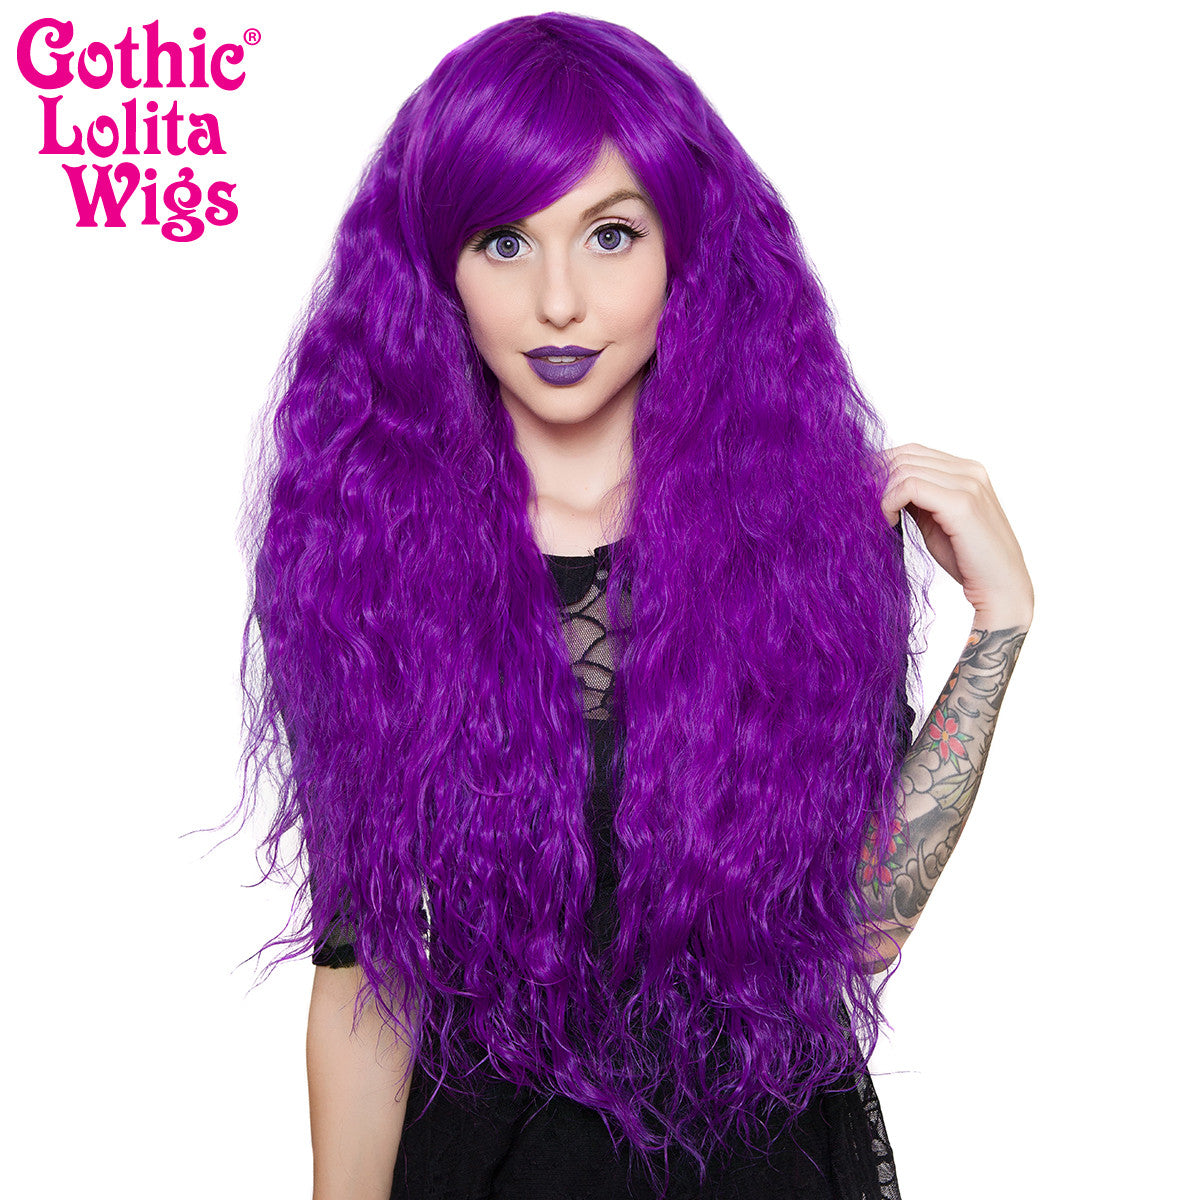 Gothic Lolita Wigs Store Rhapsody Collection Grape